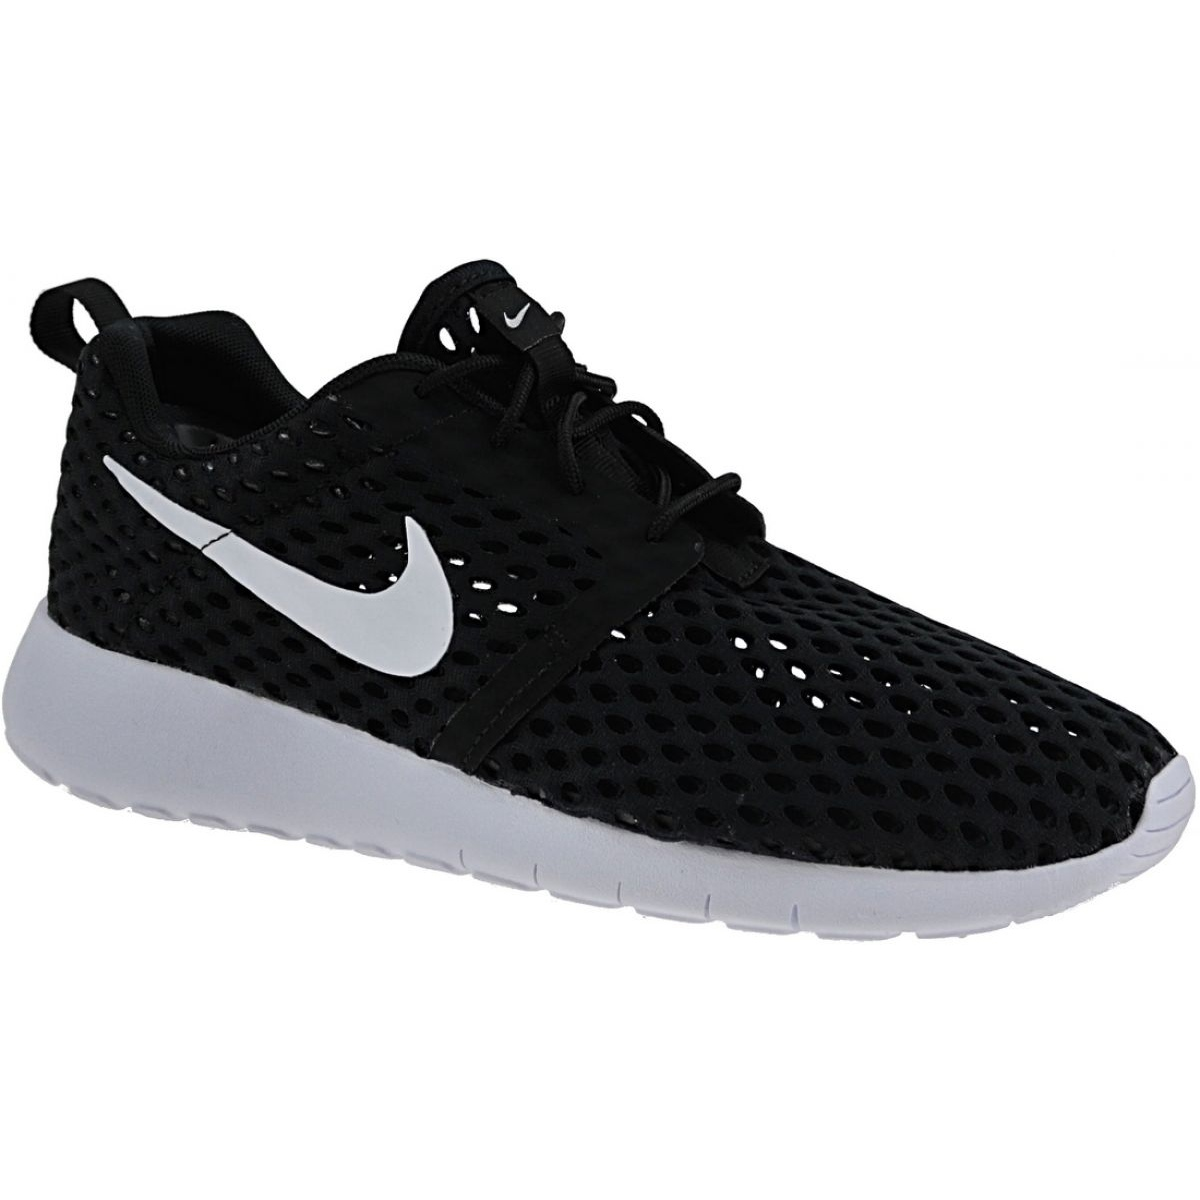 promo code factory outlets exquisite style Schwarz Nike Roshe One Flight Gs M 705485-008 Schuhe